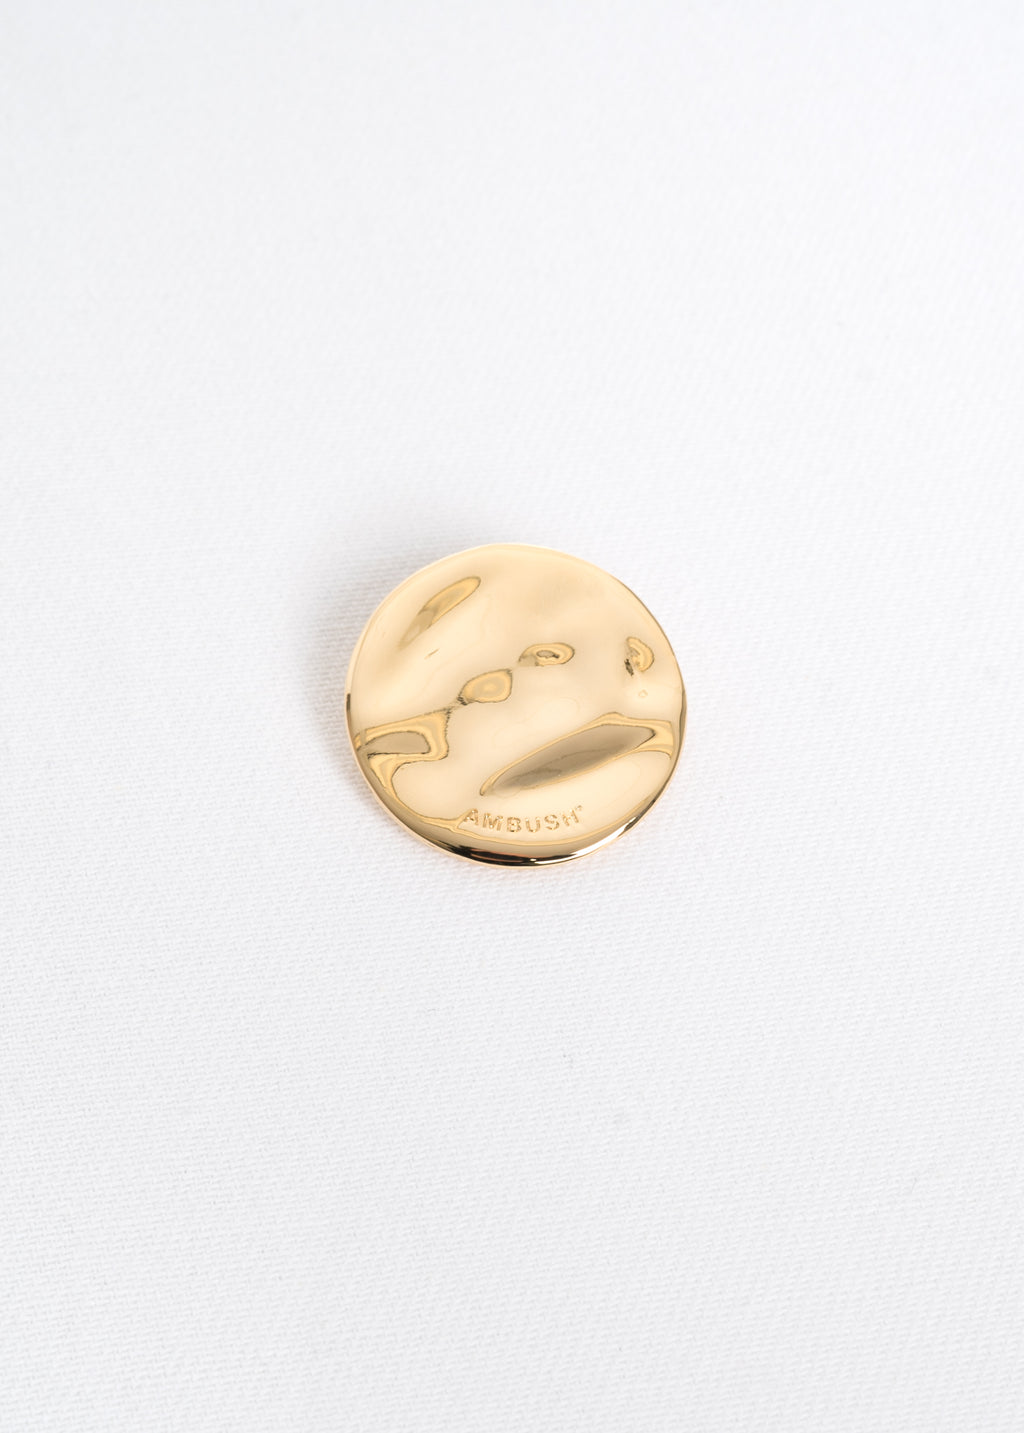 Gold Medium Generic Pin Badge